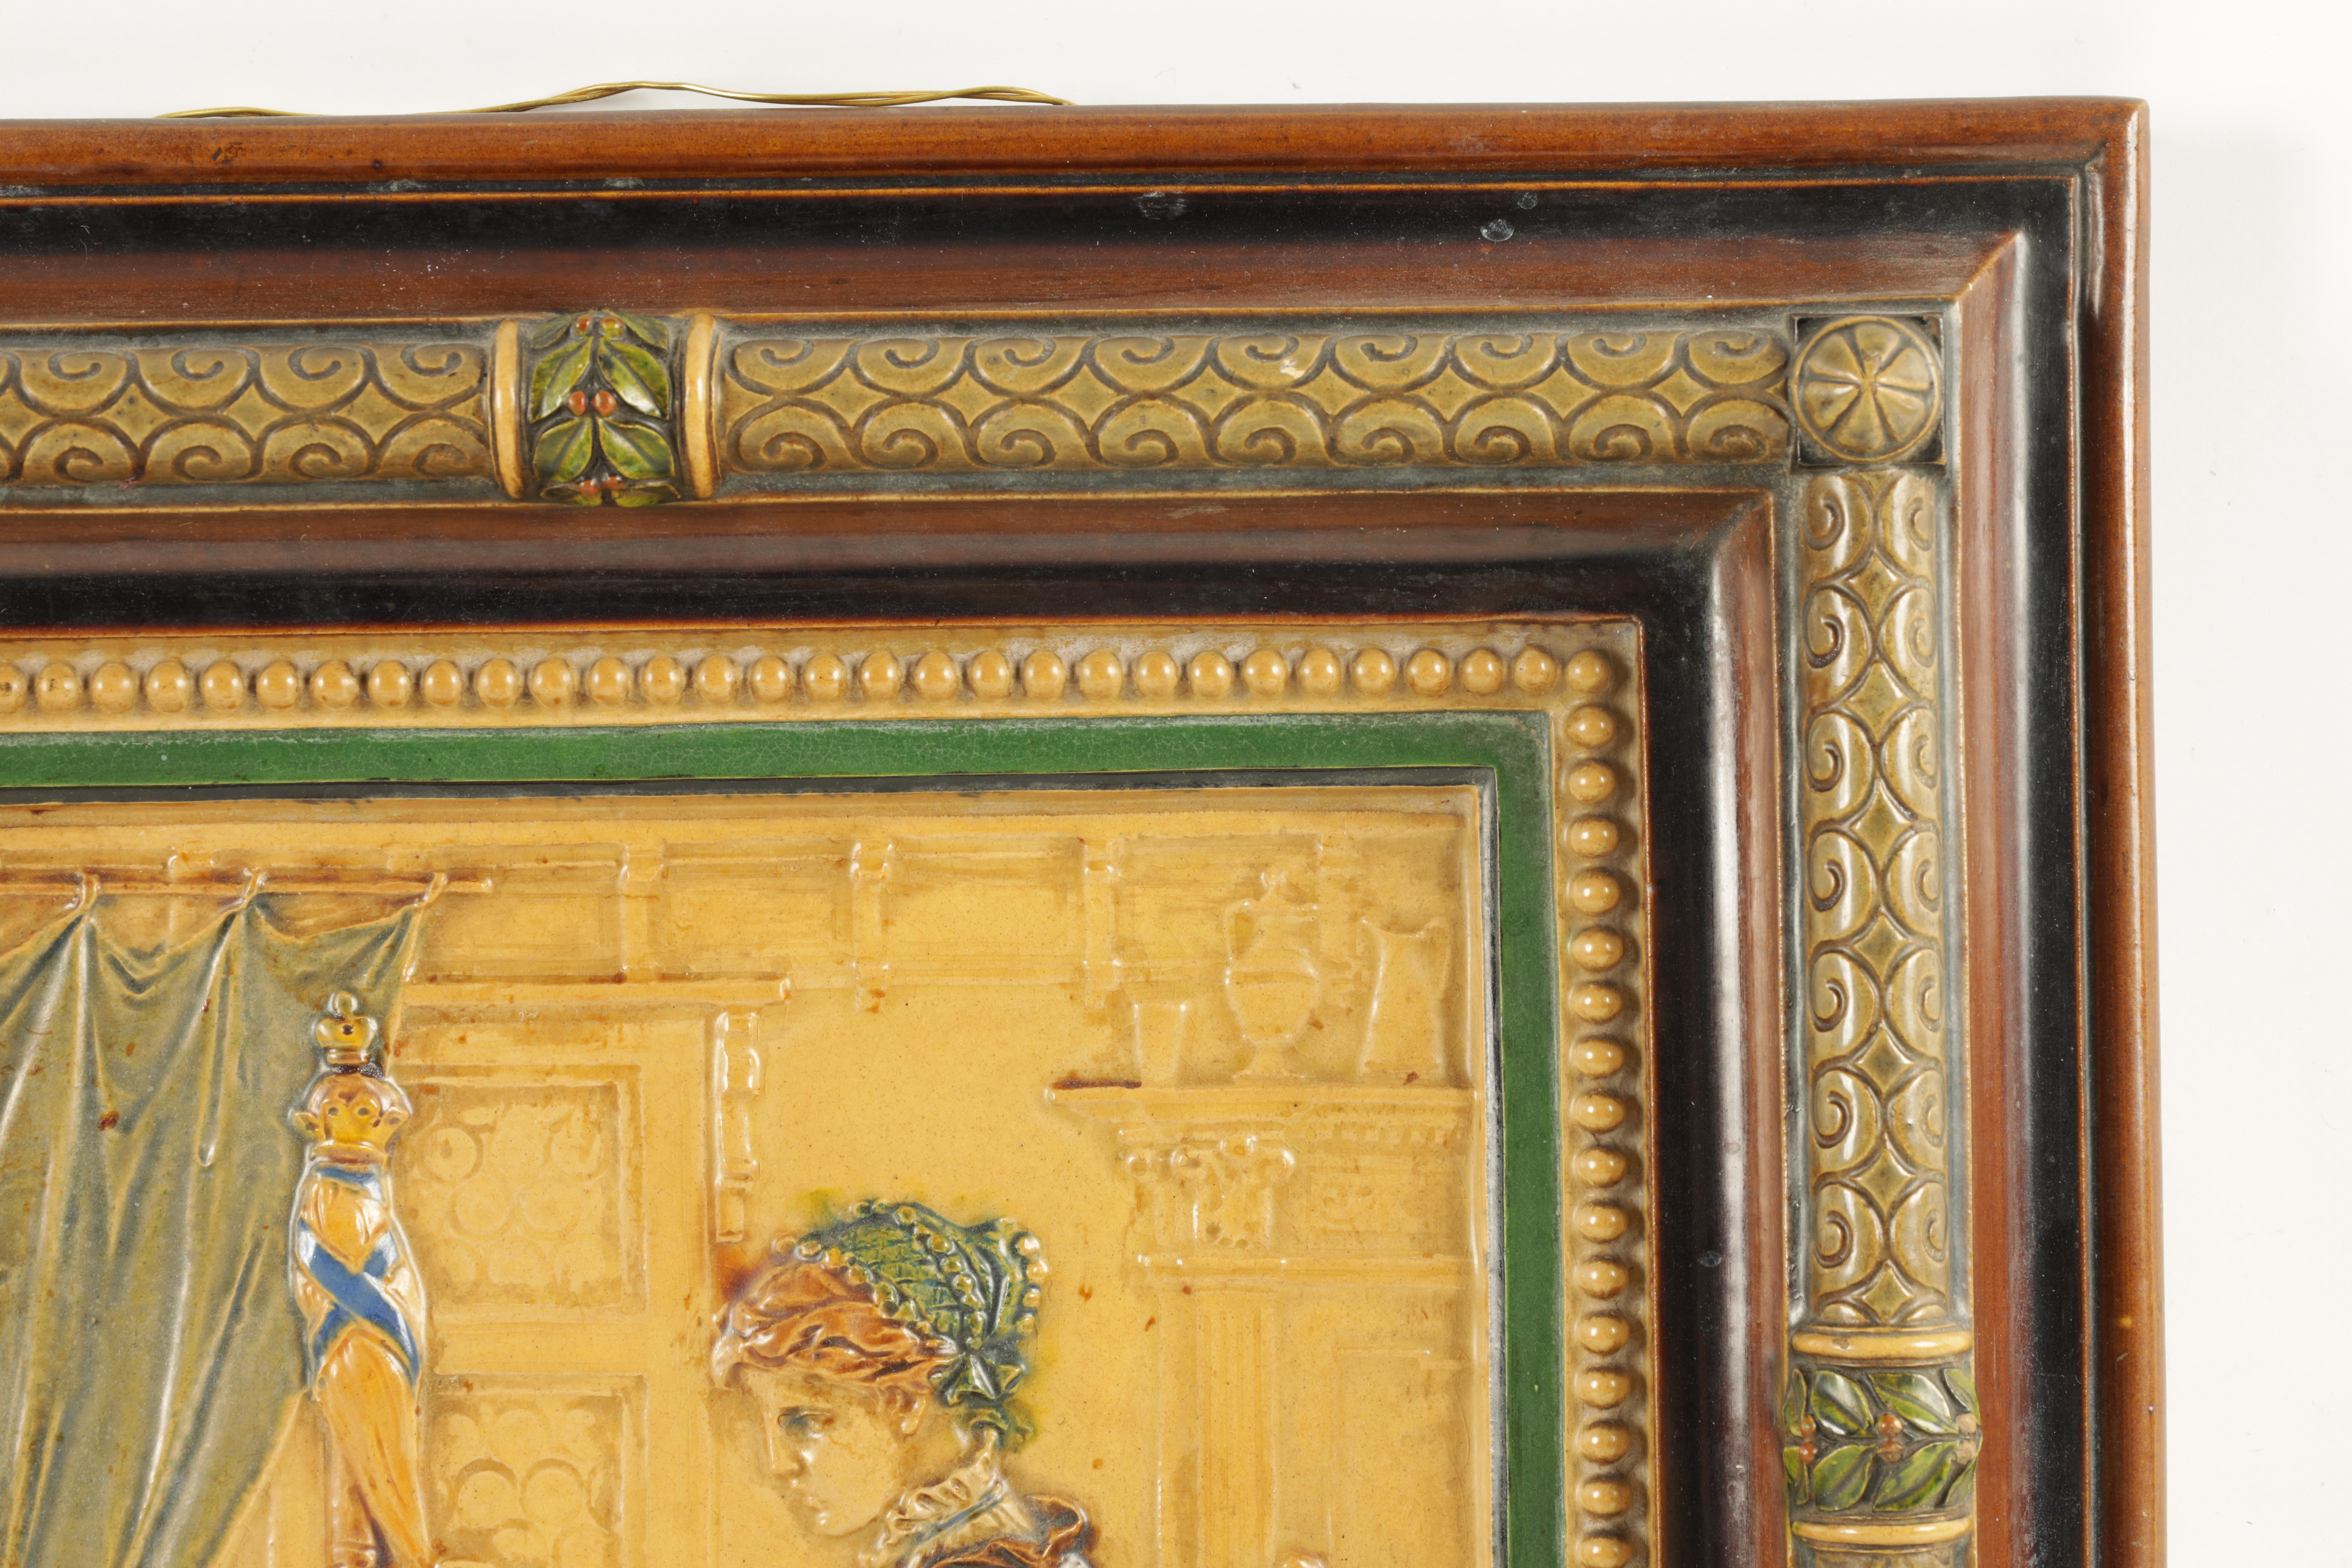 A 19TH CENTURY BORNER & BICHWEILER FIGURAL MAJOLICA HANGING PLAQUE decorated in polychrome colours - - Image 3 of 5